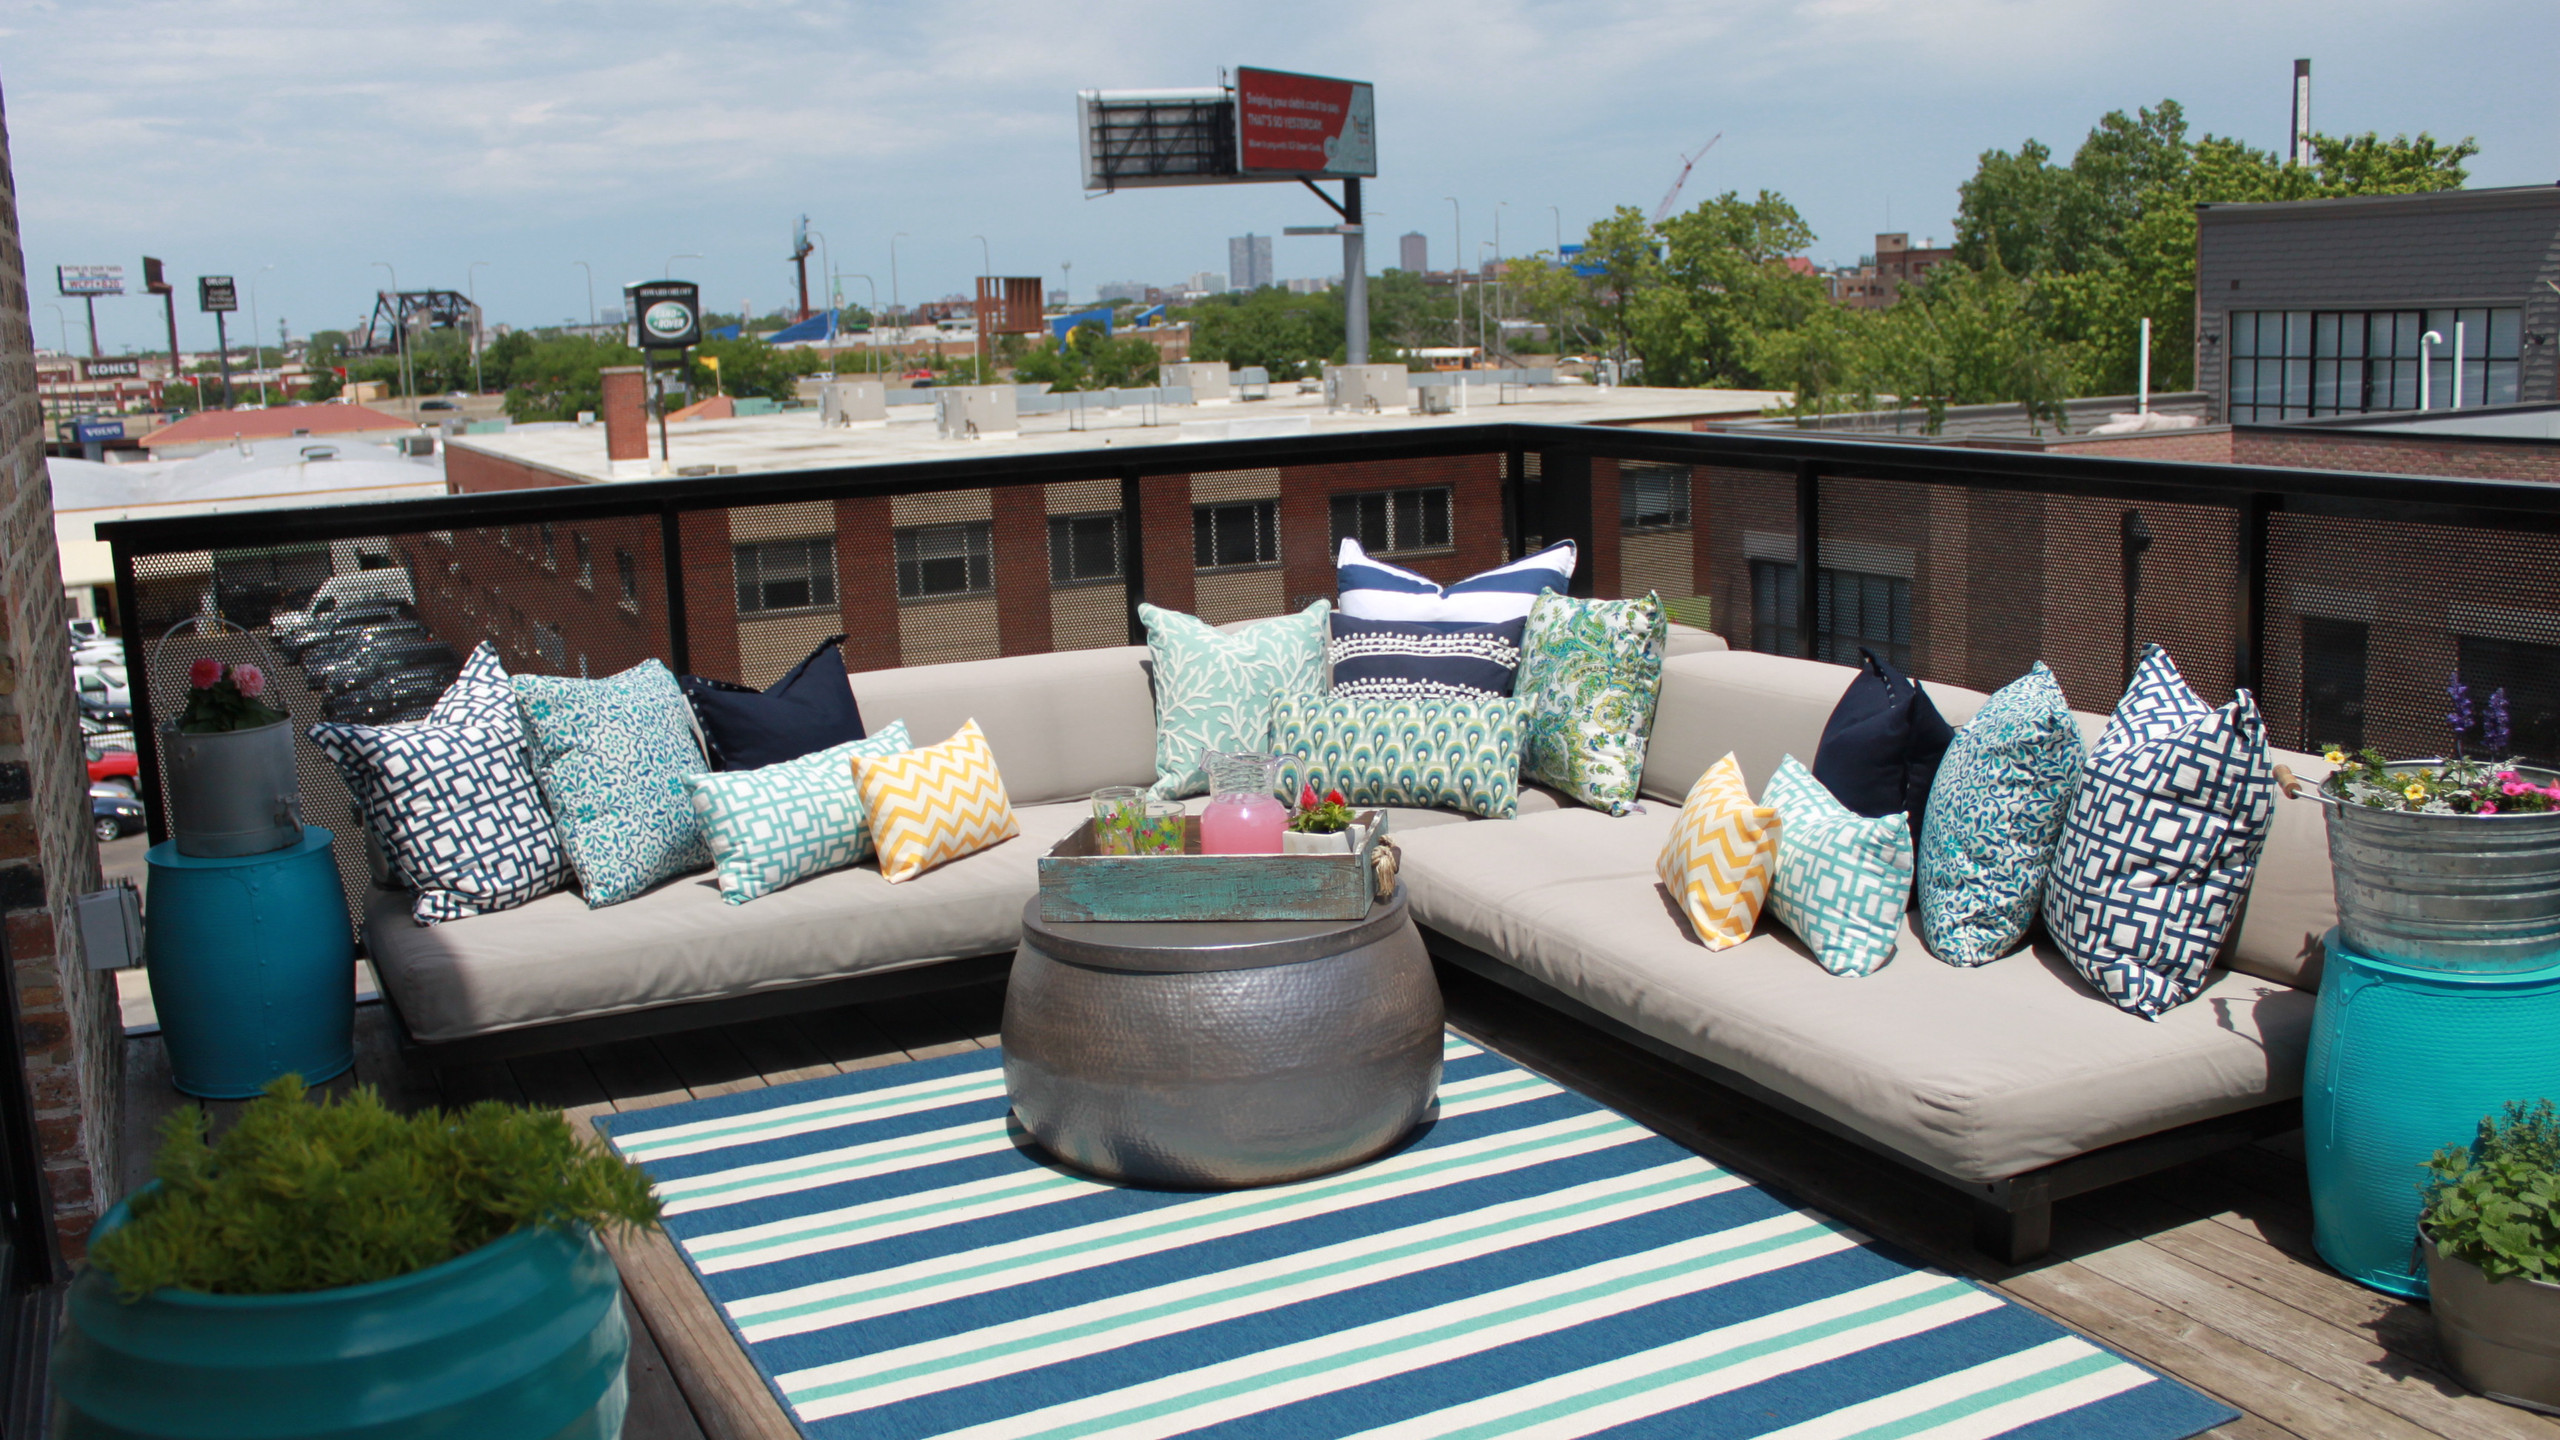 Top Floor Deck with Lounge Seating